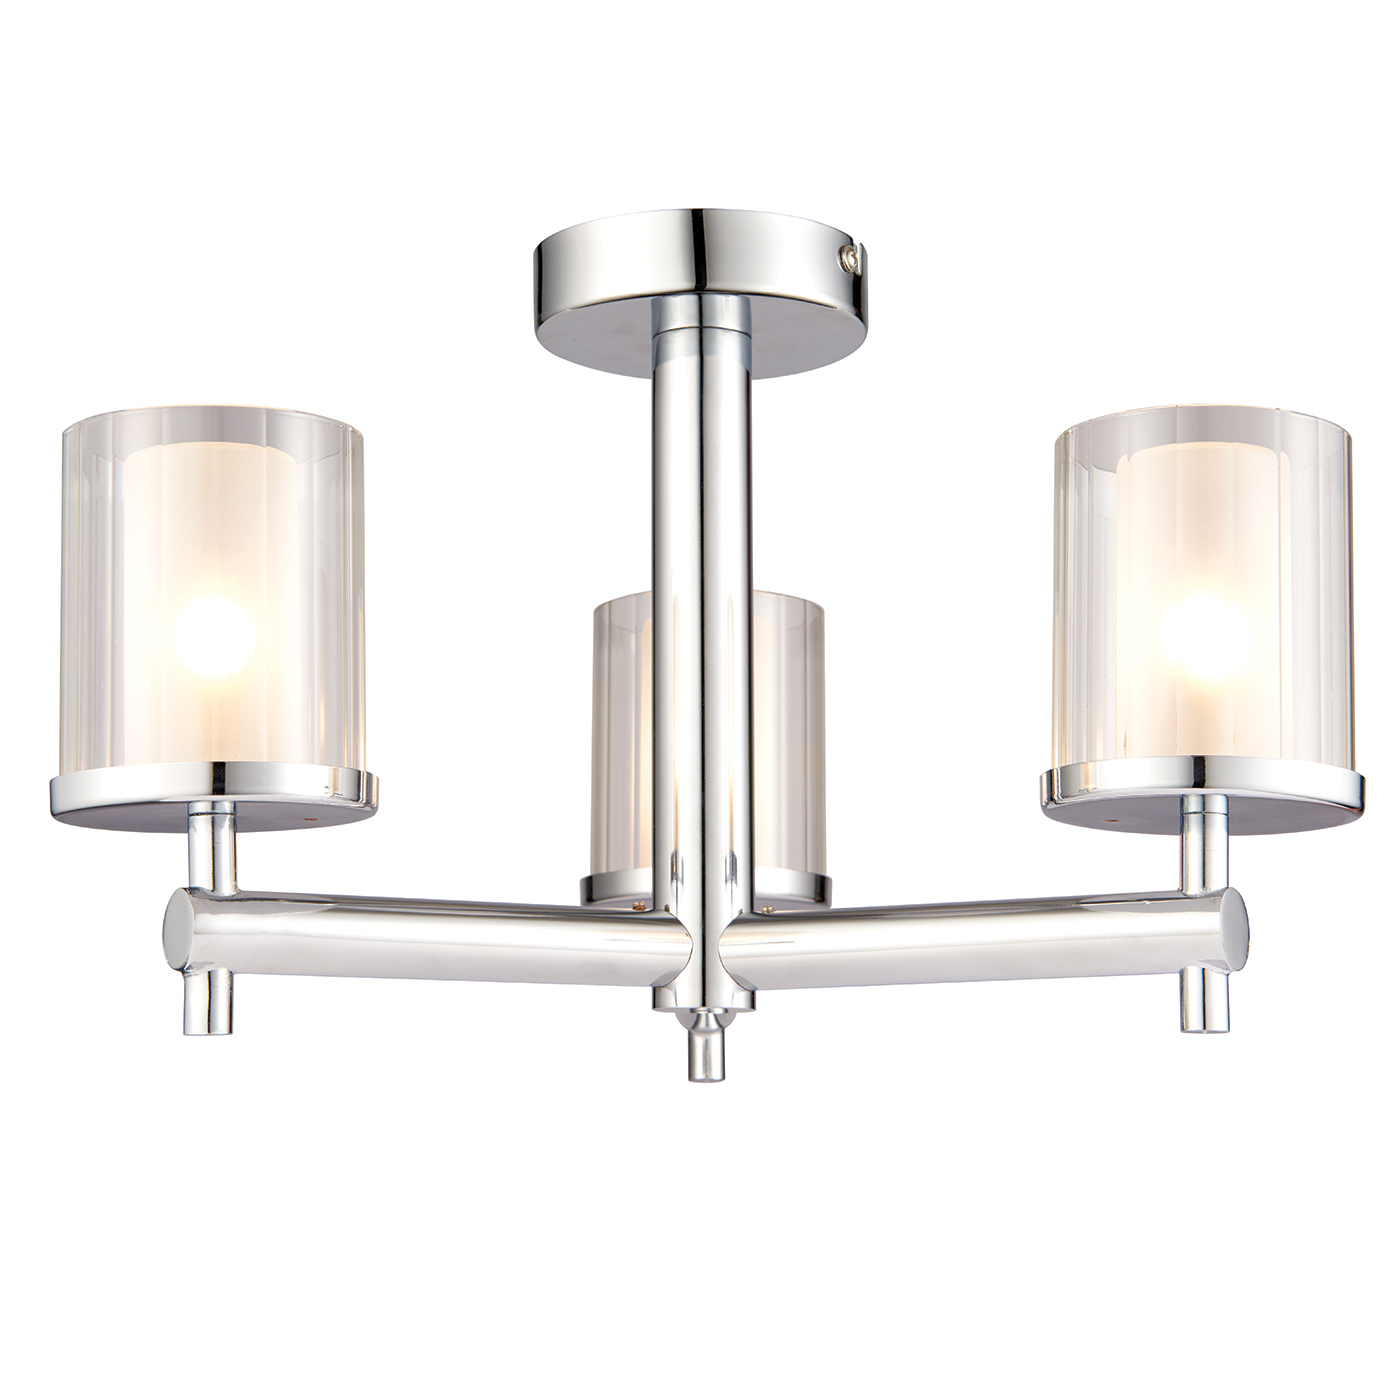 Endon Britton semi flush bathroom ceiling light IP44 3x 18W chrome rippled glass